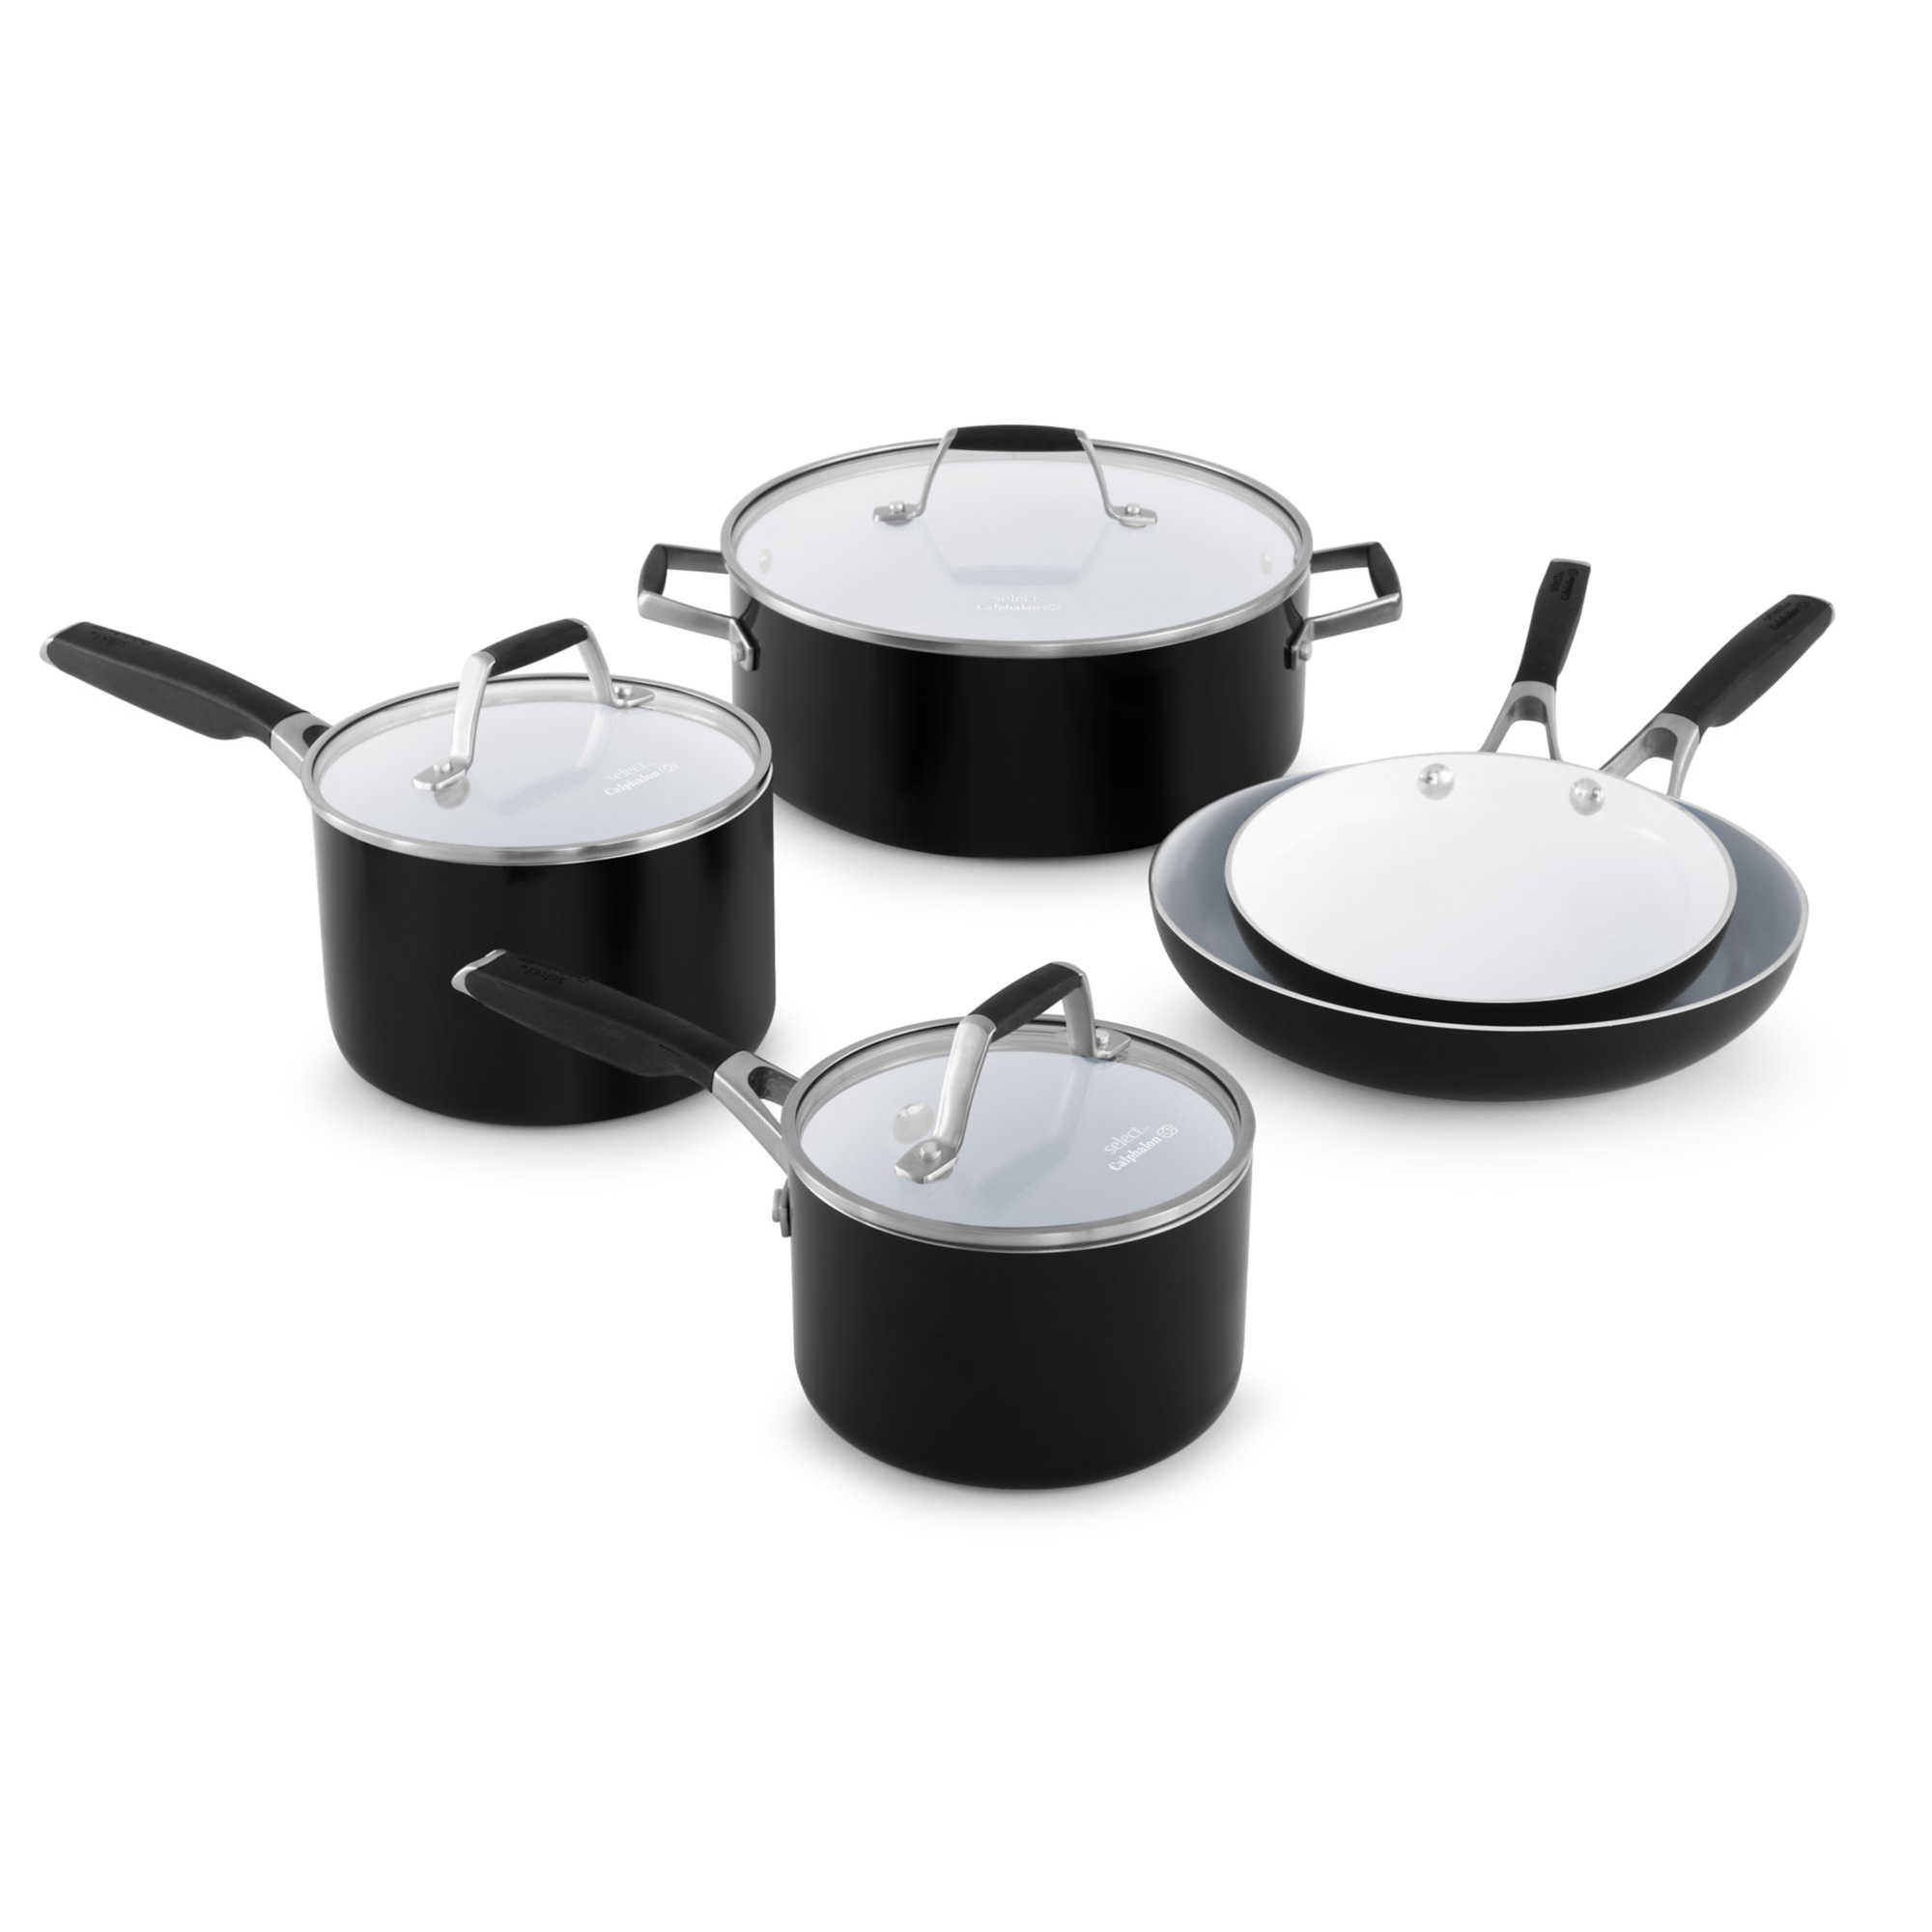 Select by Calphalon Ceramic Nonstick 8 Piece Set, 1.0 CT